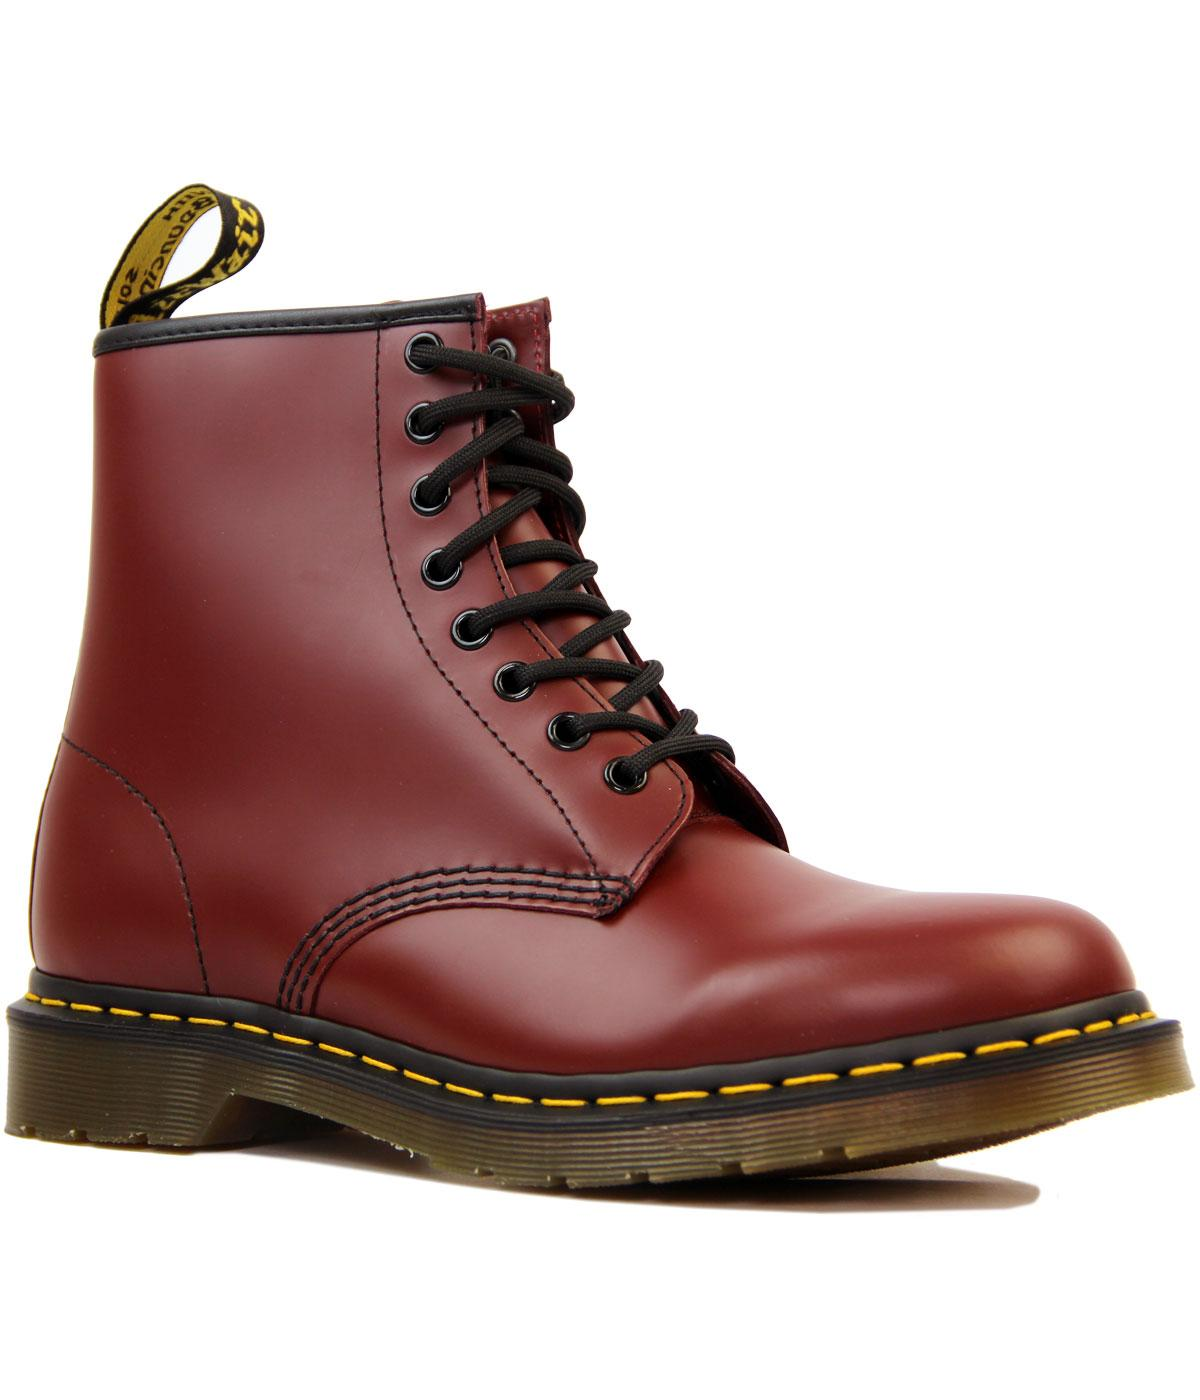 1460 DR MARTENS Mod Smooth Cherry Leather Boots